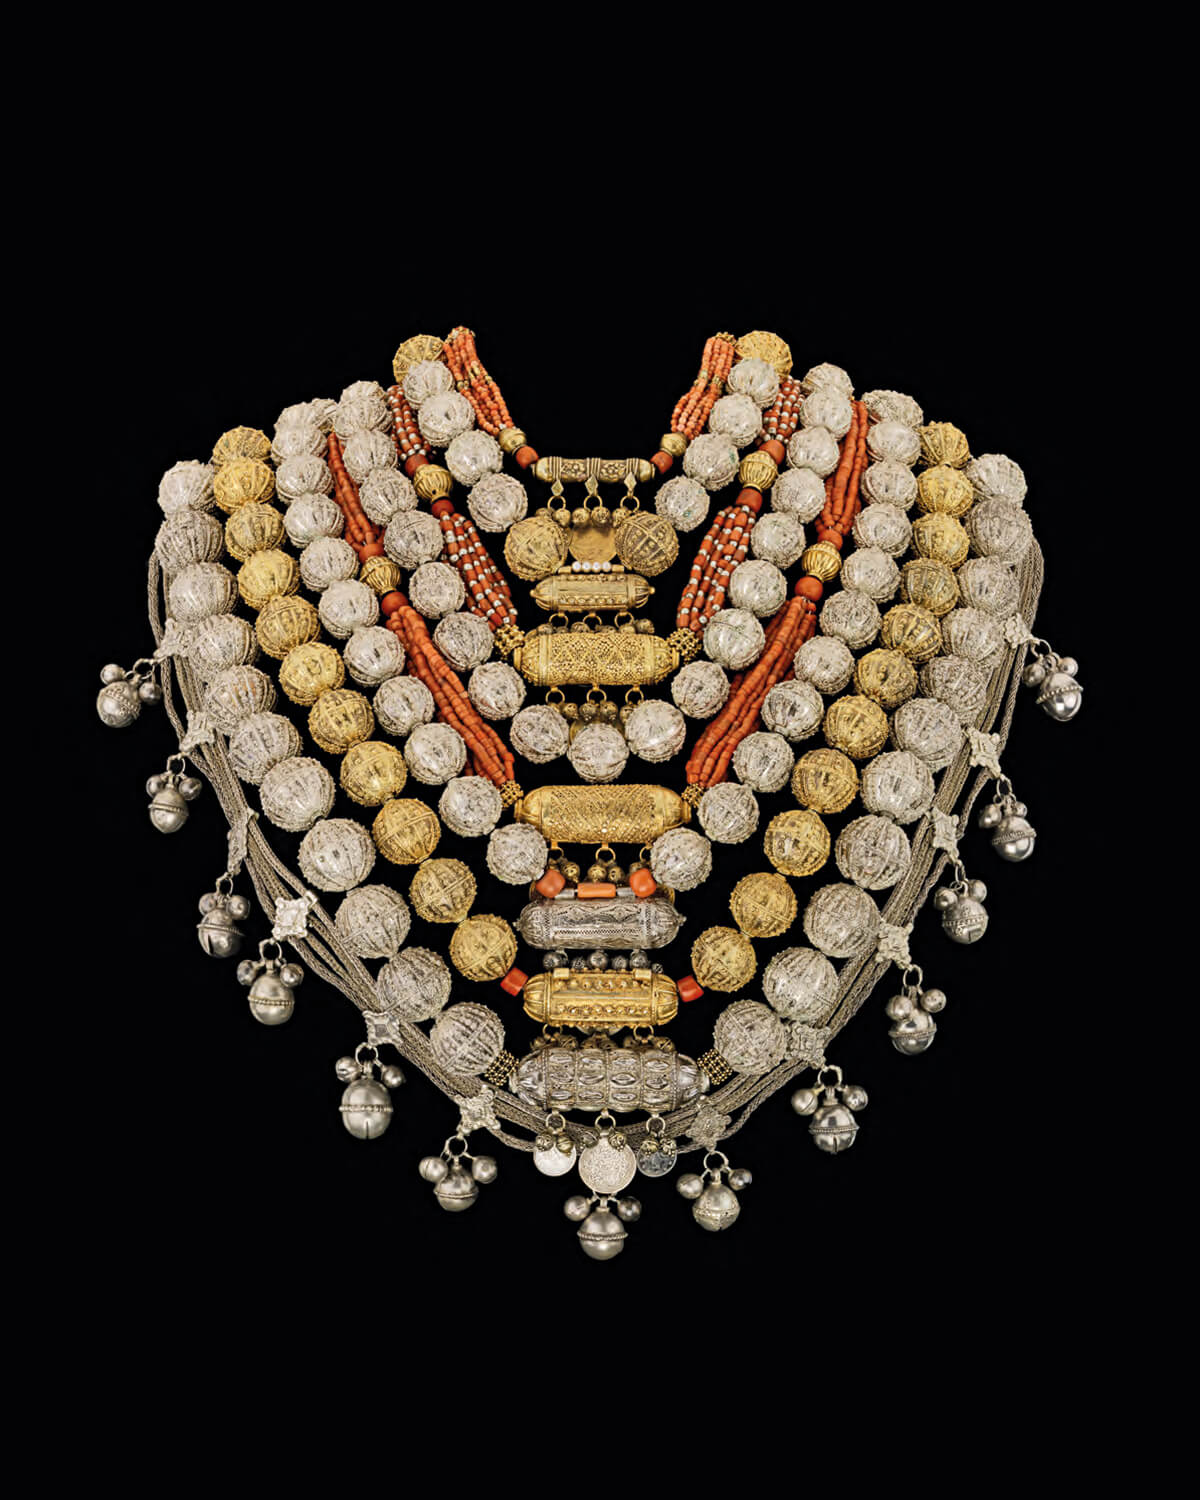 Israel jewelry in israel multicultural diversity 1948 to the present 02 Bridal jewellery, Sana'a